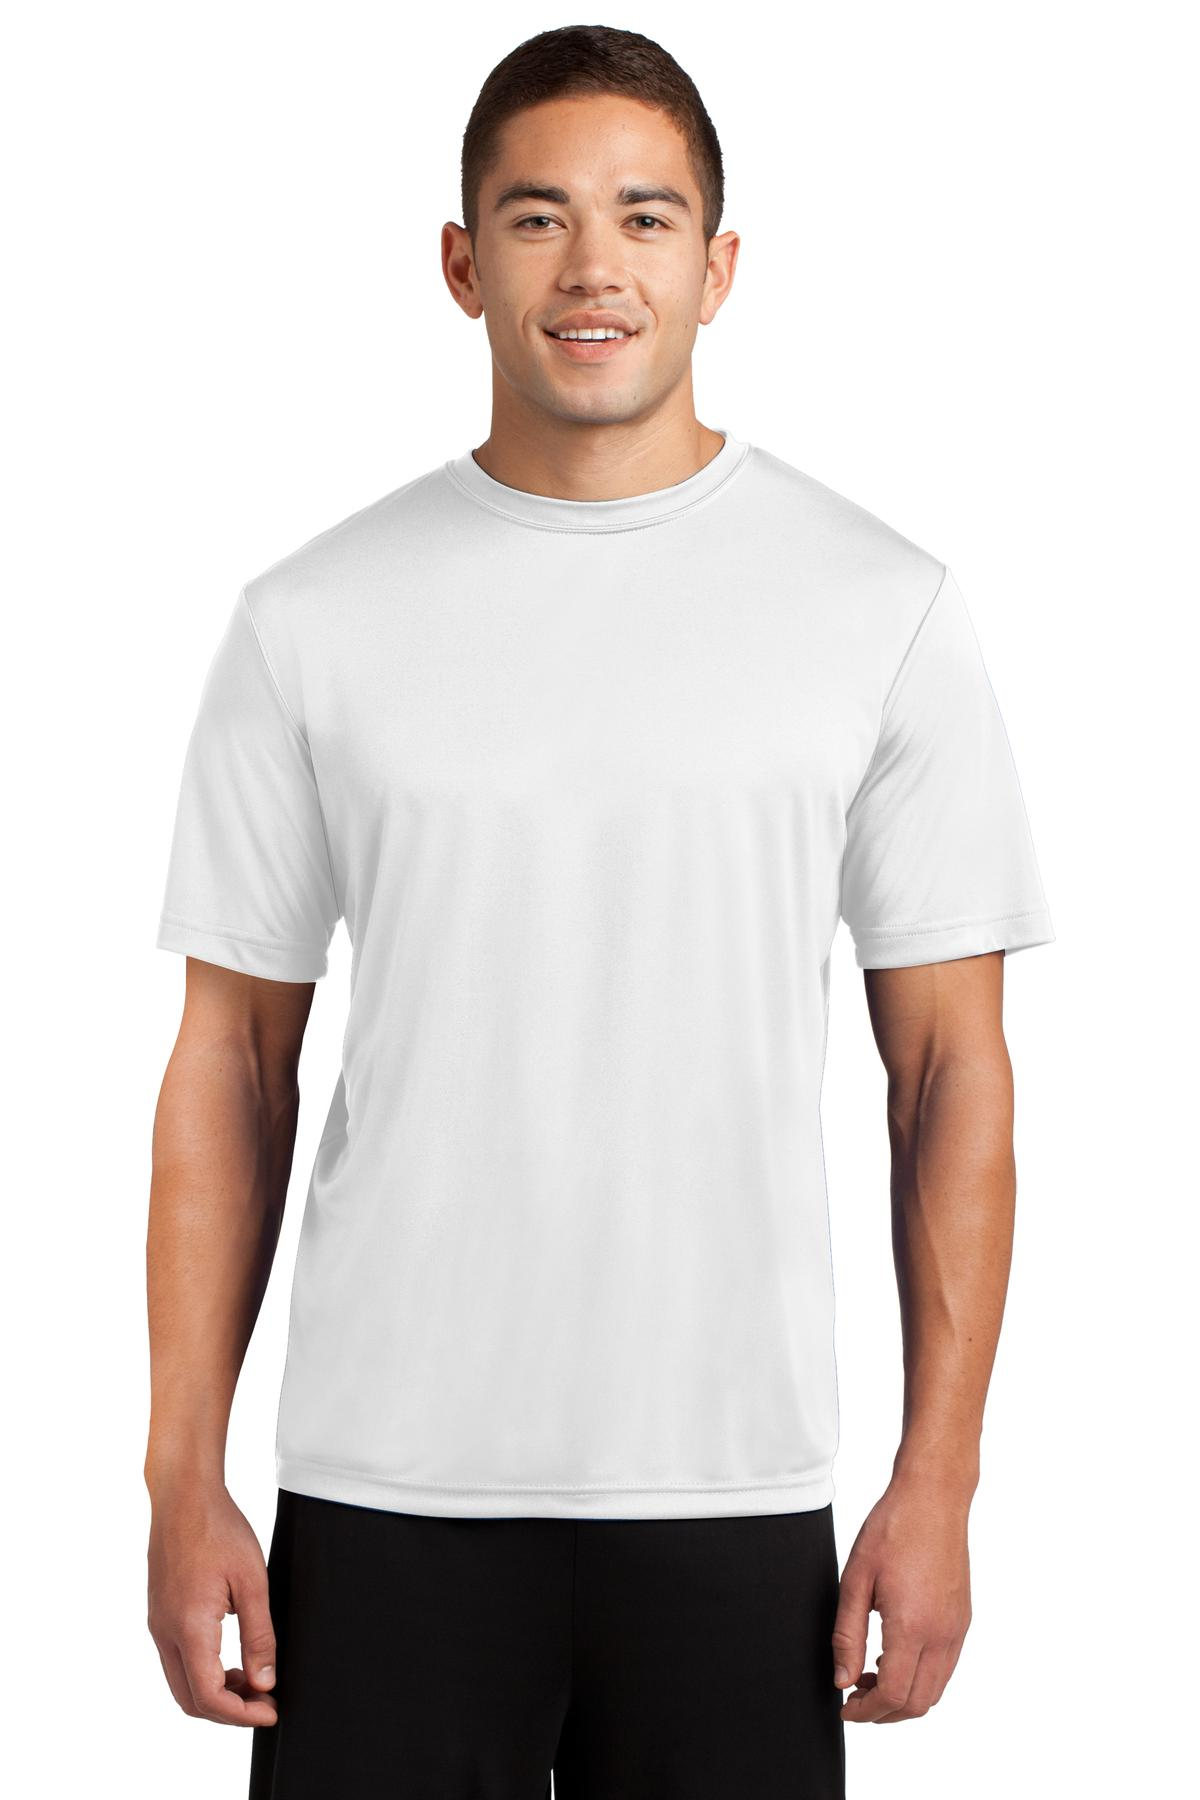 Sport-Tek Tall PosiCharge Competitor T-Shirt